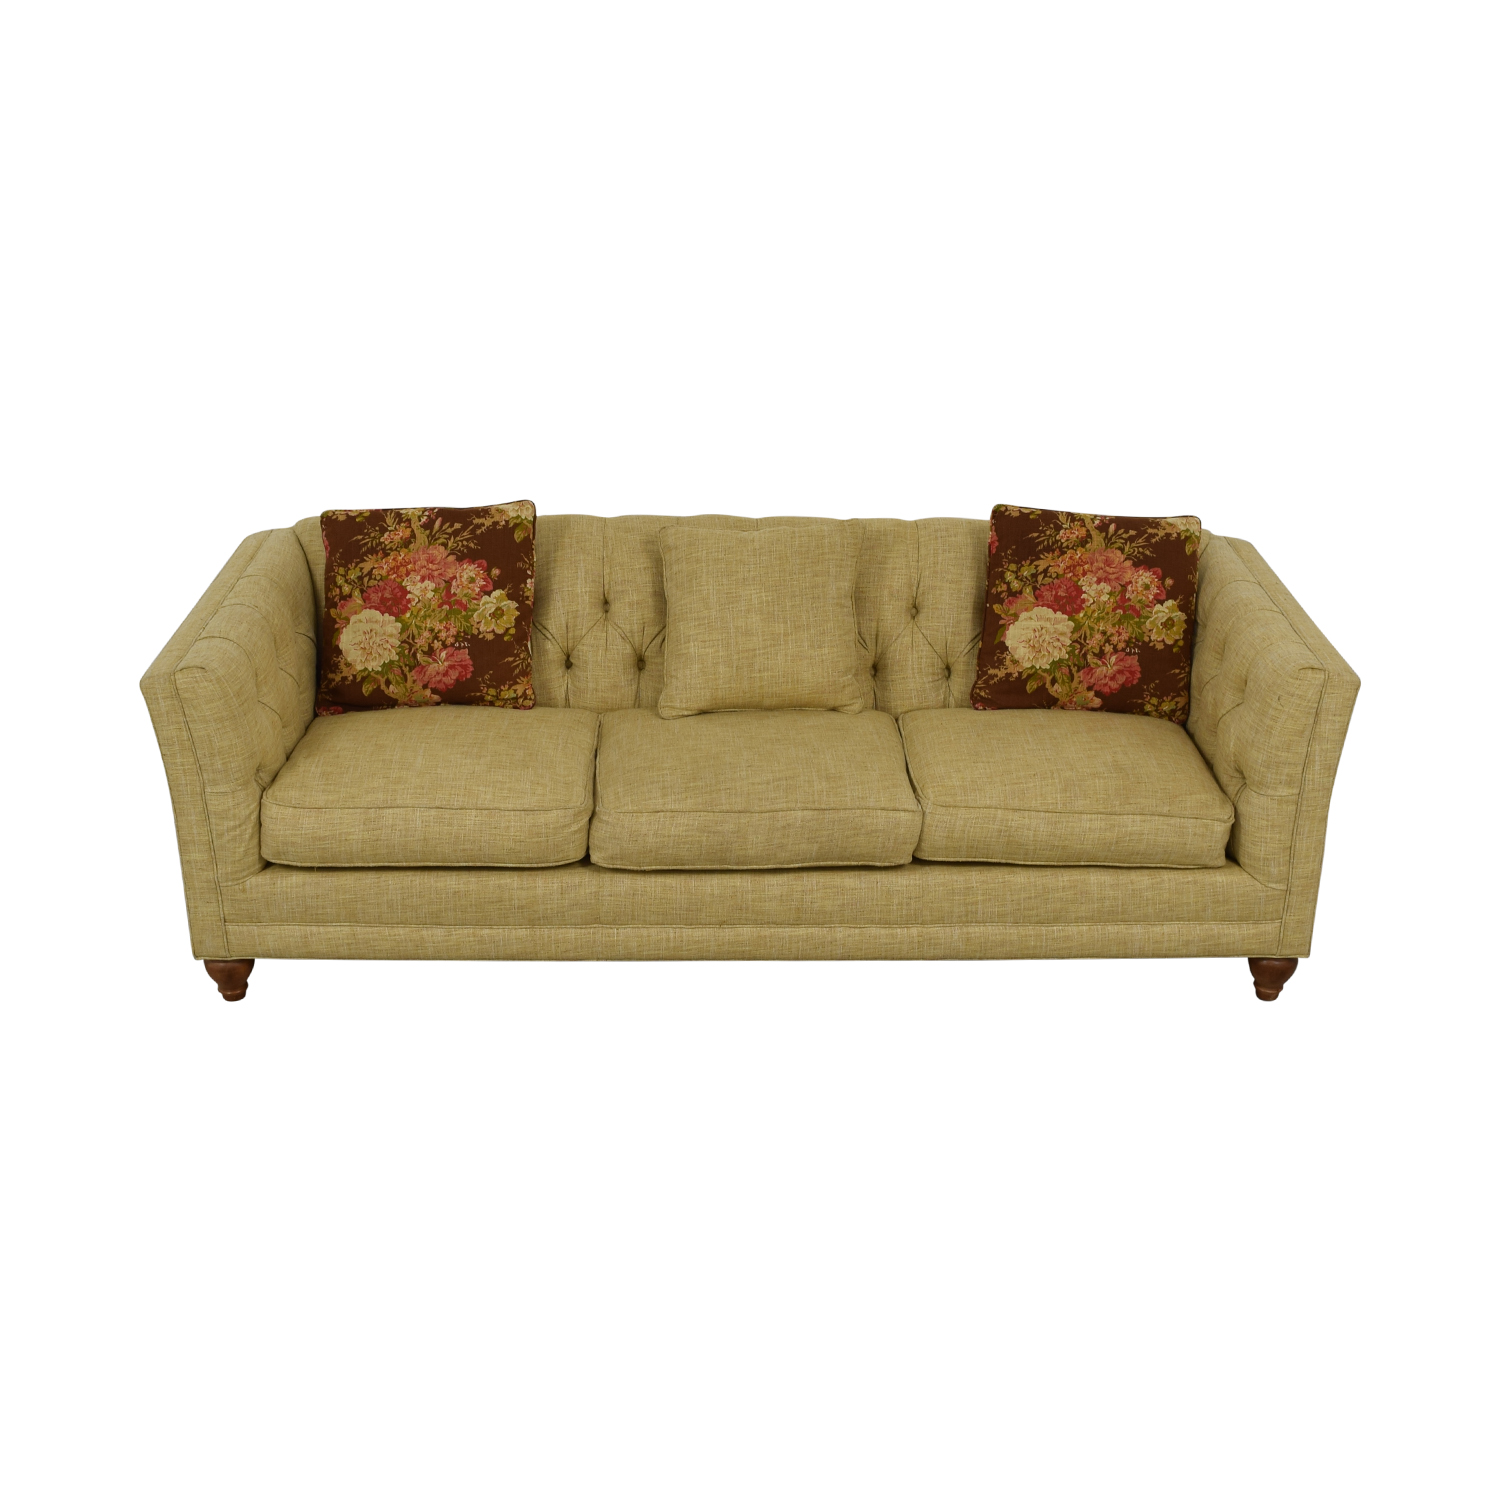 buy Country Willow Tan Three-Cushion Sofa Country Willow Classic Sofas